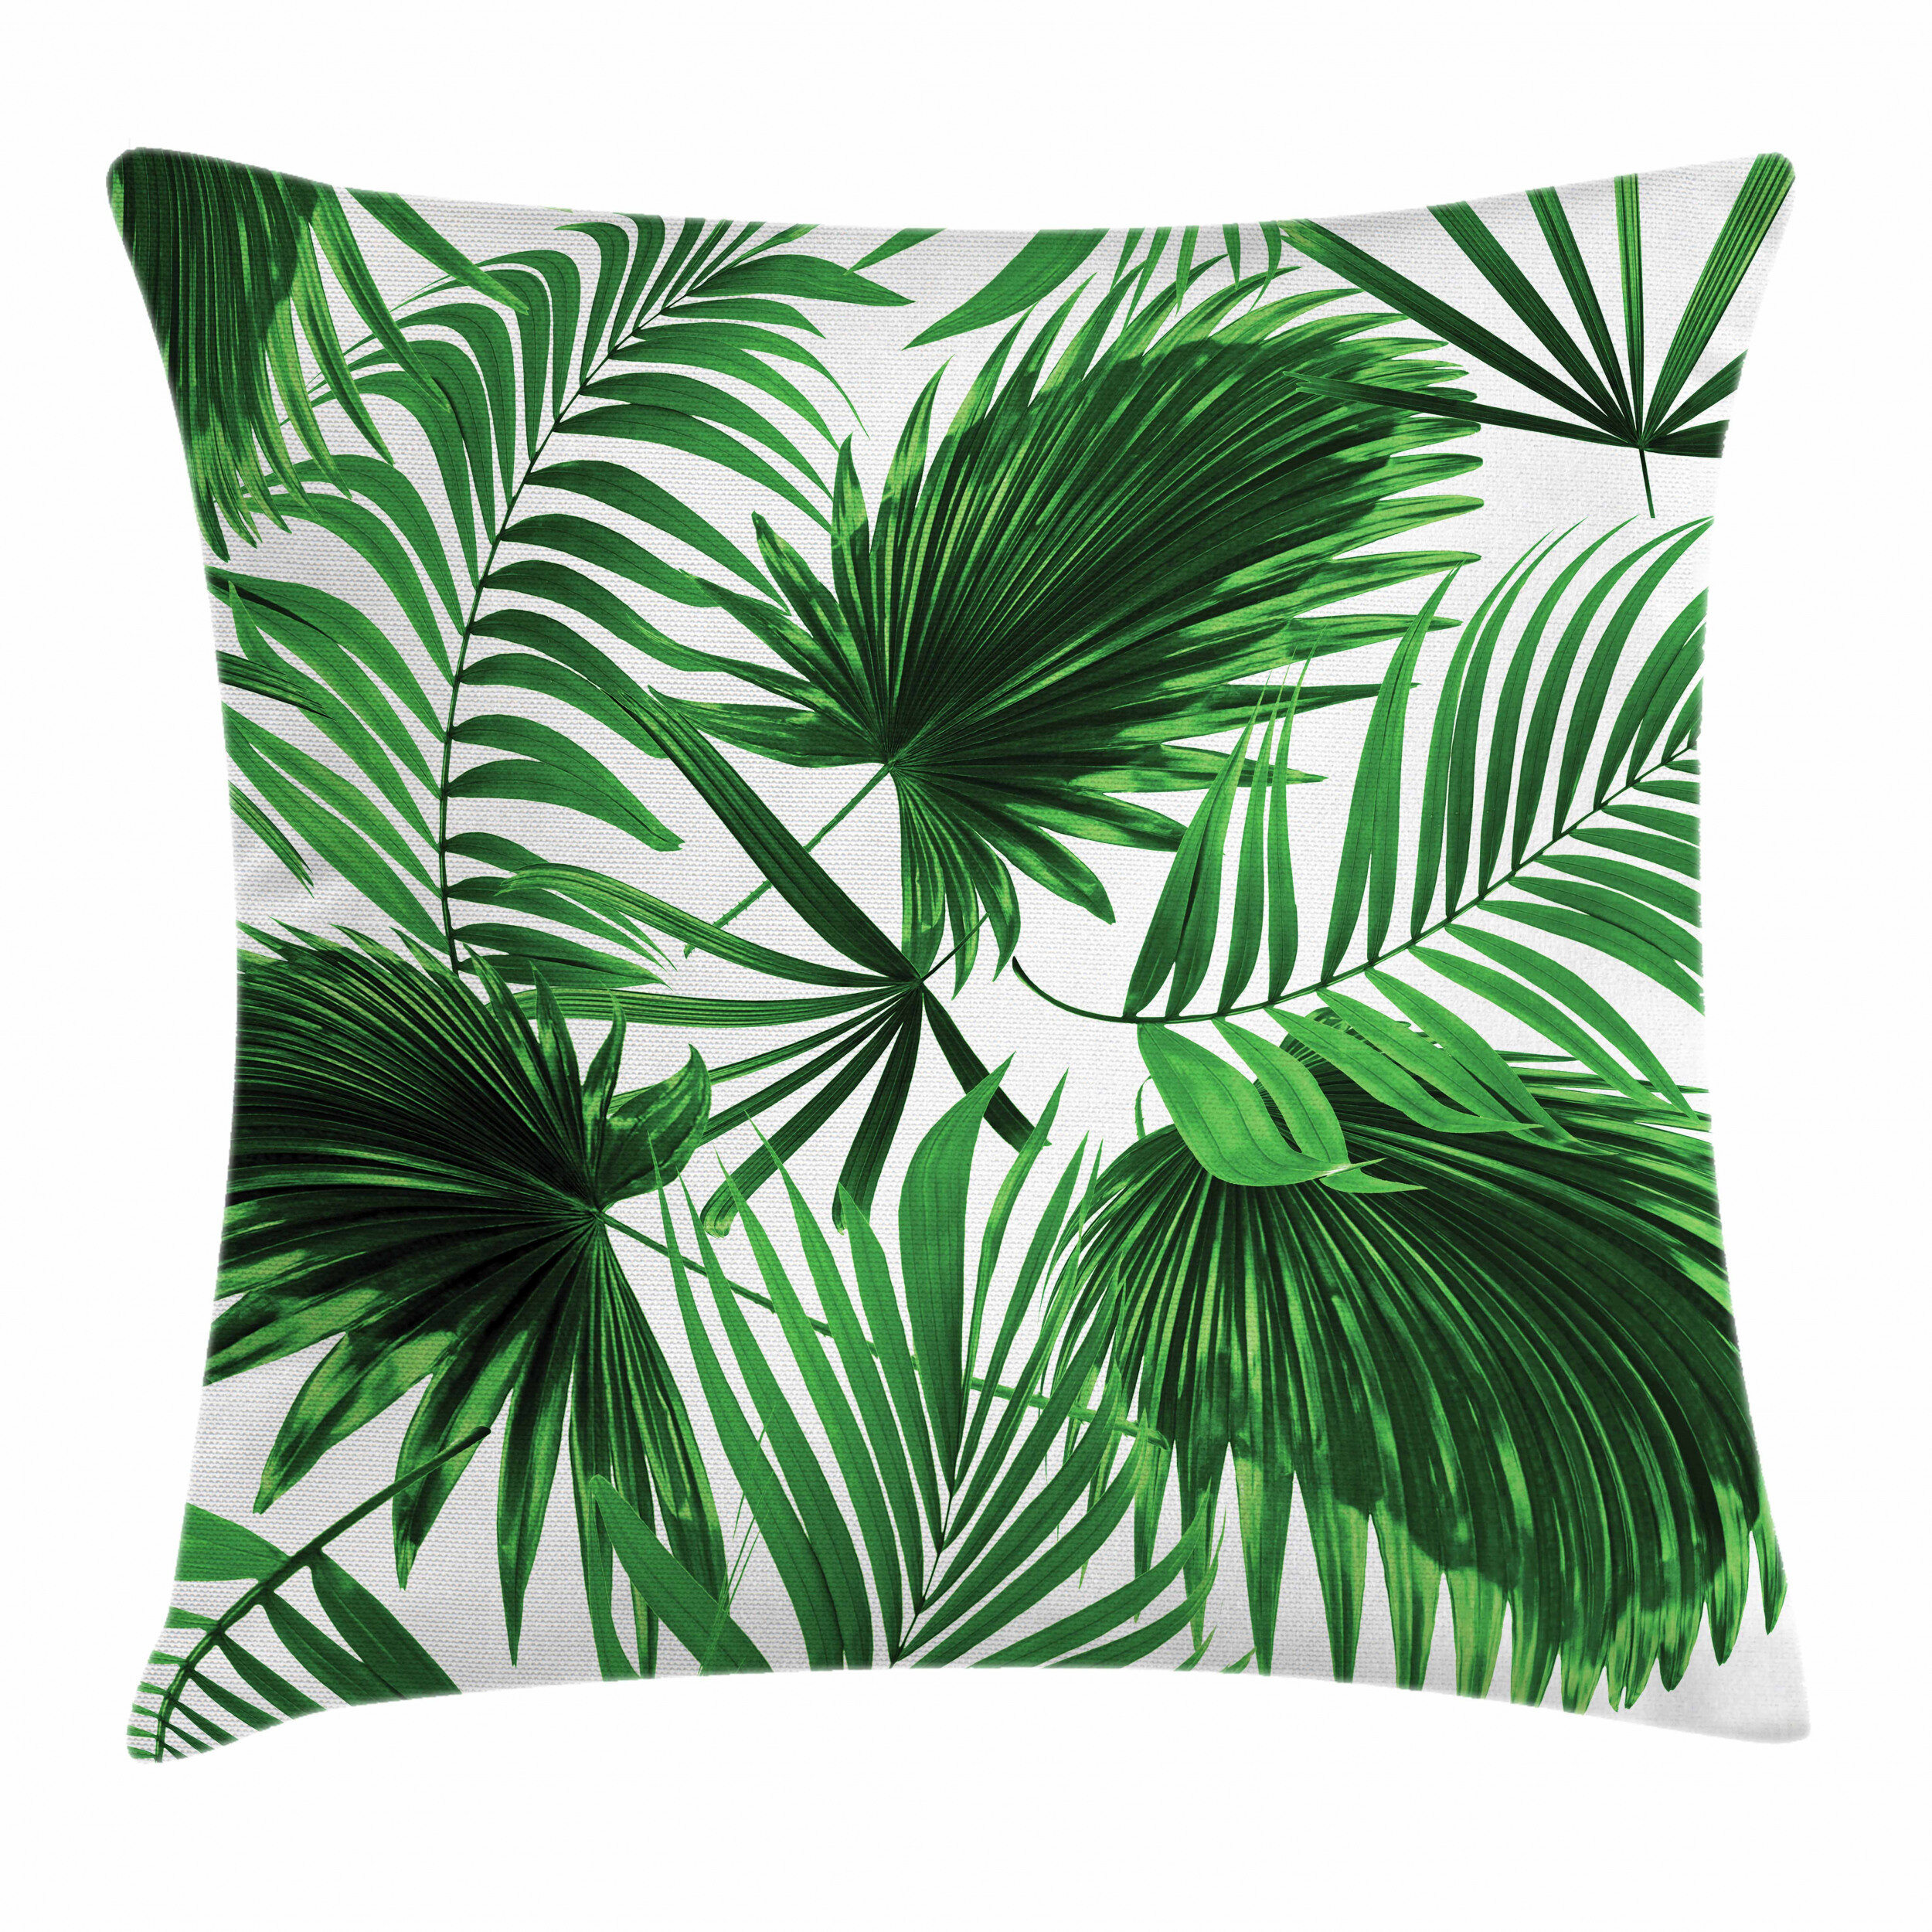 Alfie James Palm Leaf Vivid Leaves Growth Outdoor Cushion Cover